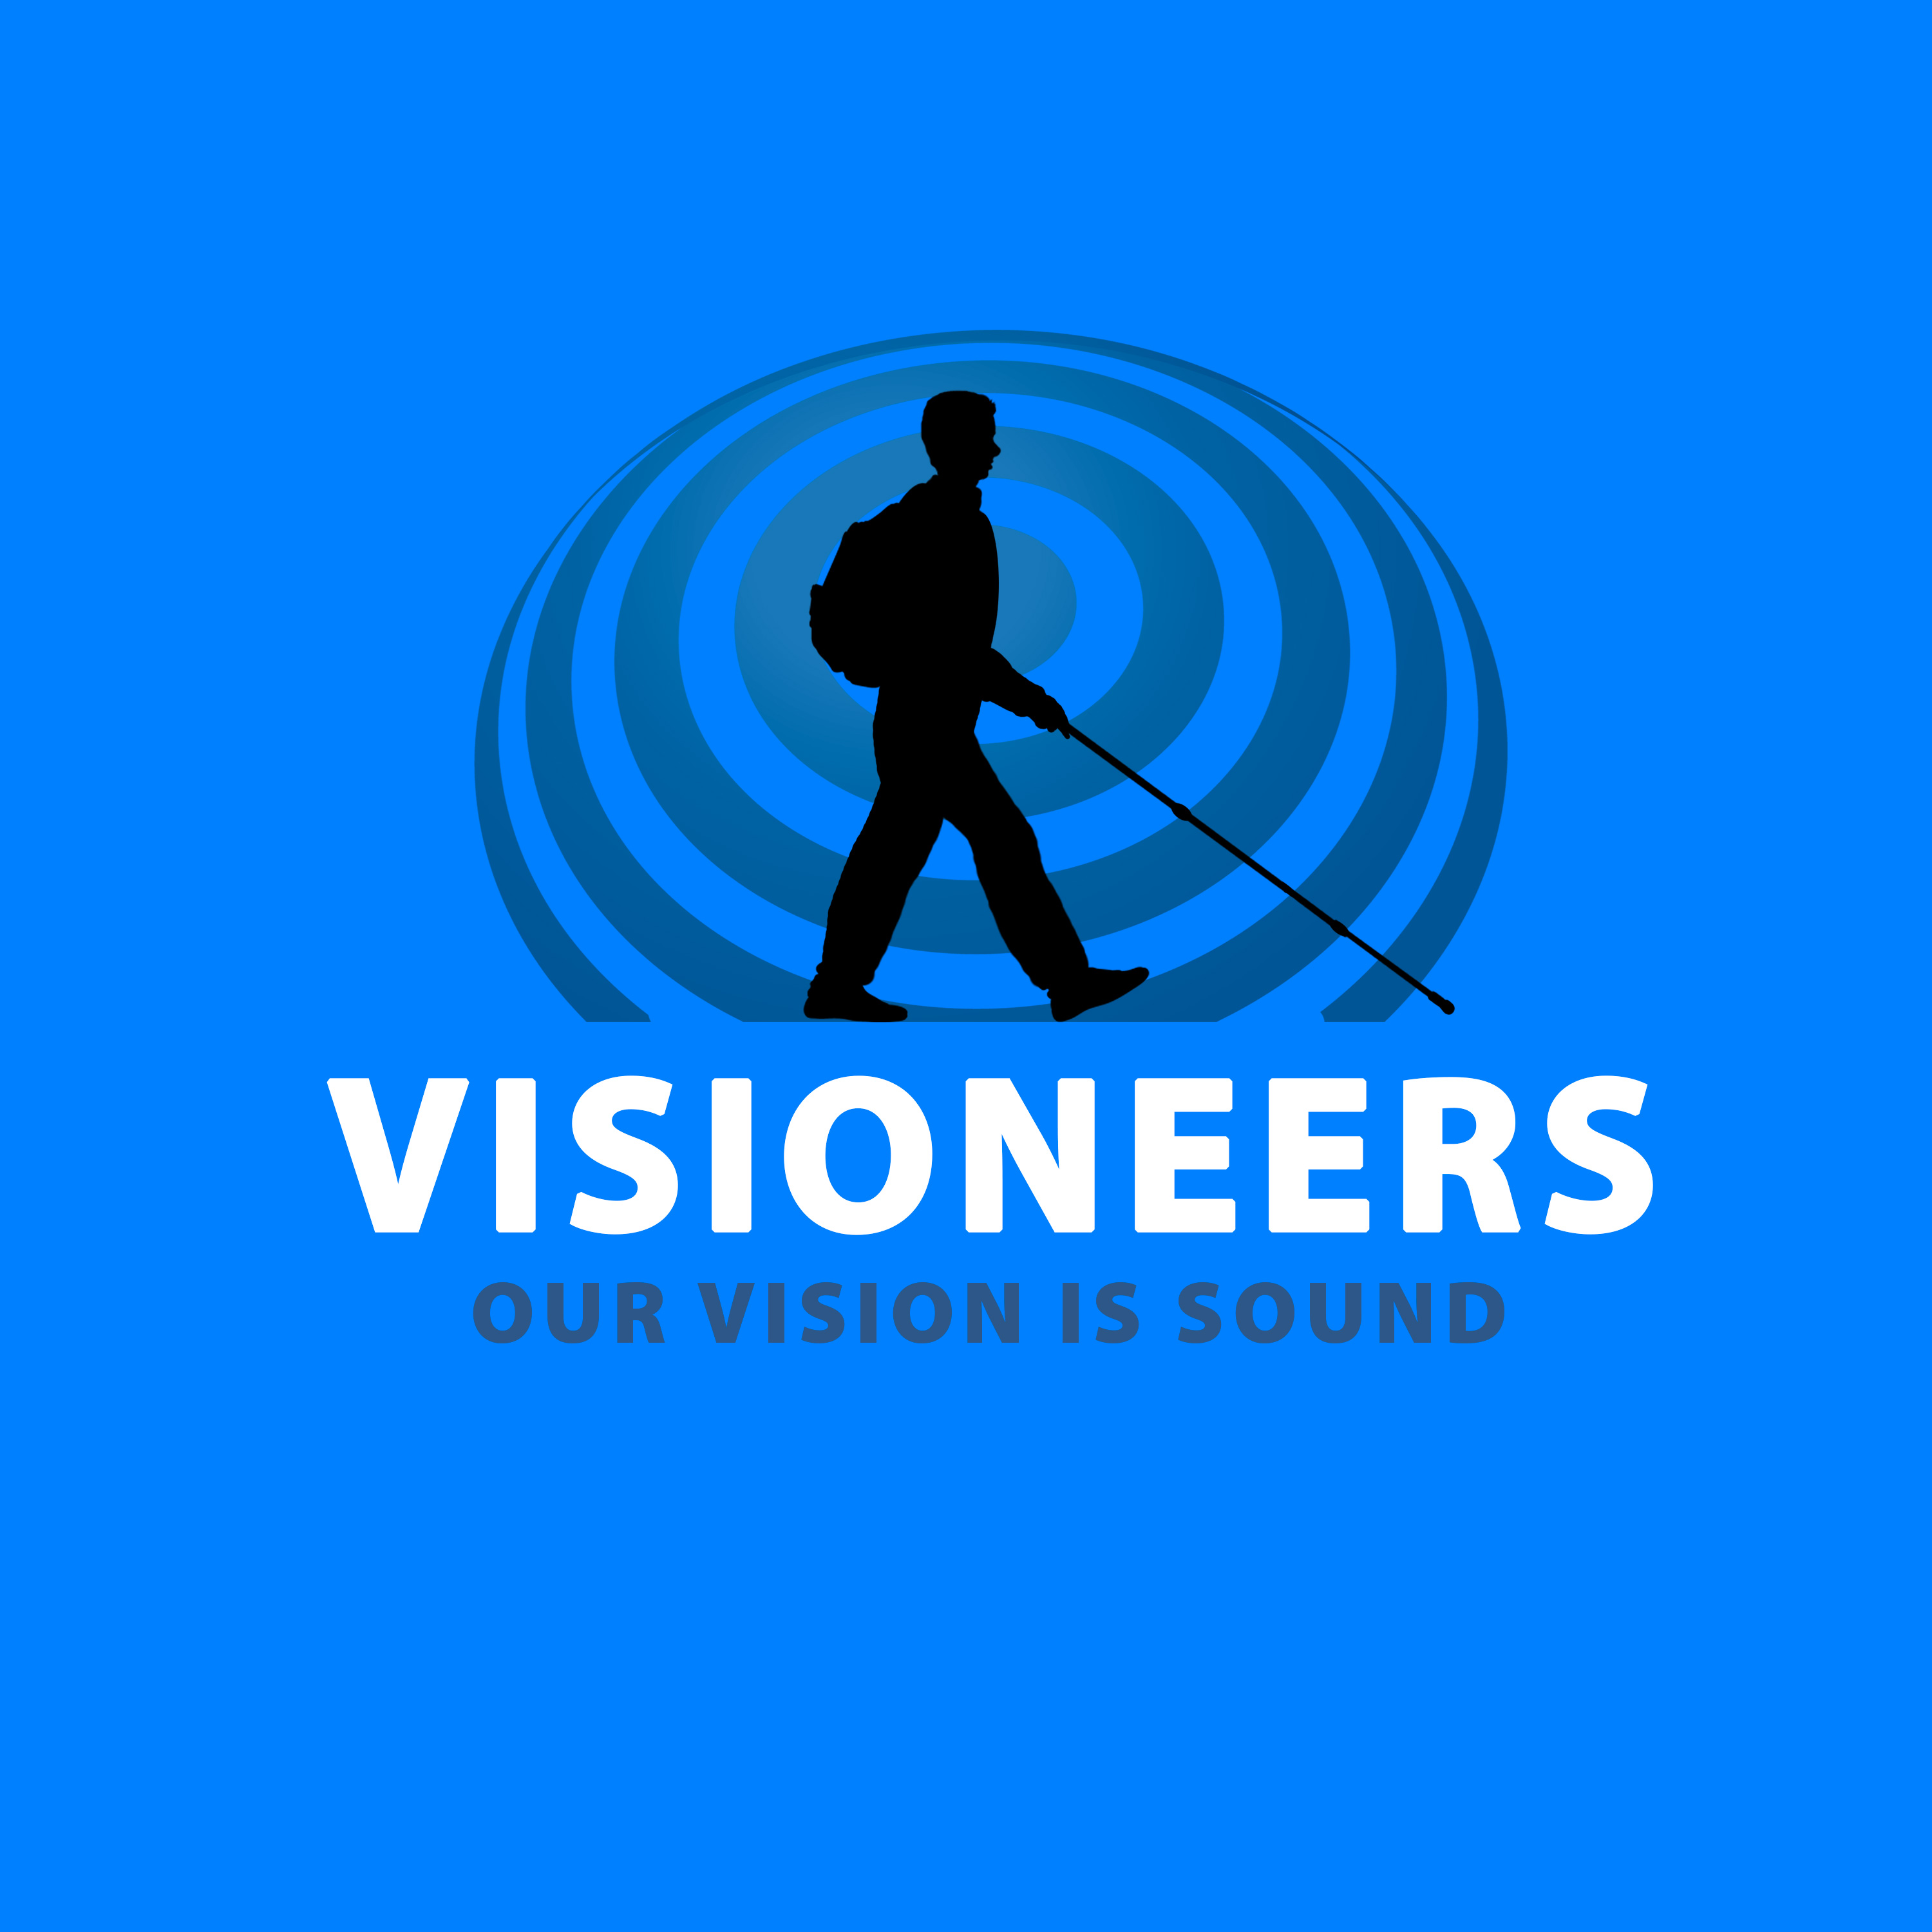 A1 version shows single Daniel black silhouette against a transparent medium grey sonar wave with Visioneers in white bold letters and Our Vision Is Sound in matching grey against a blue background.